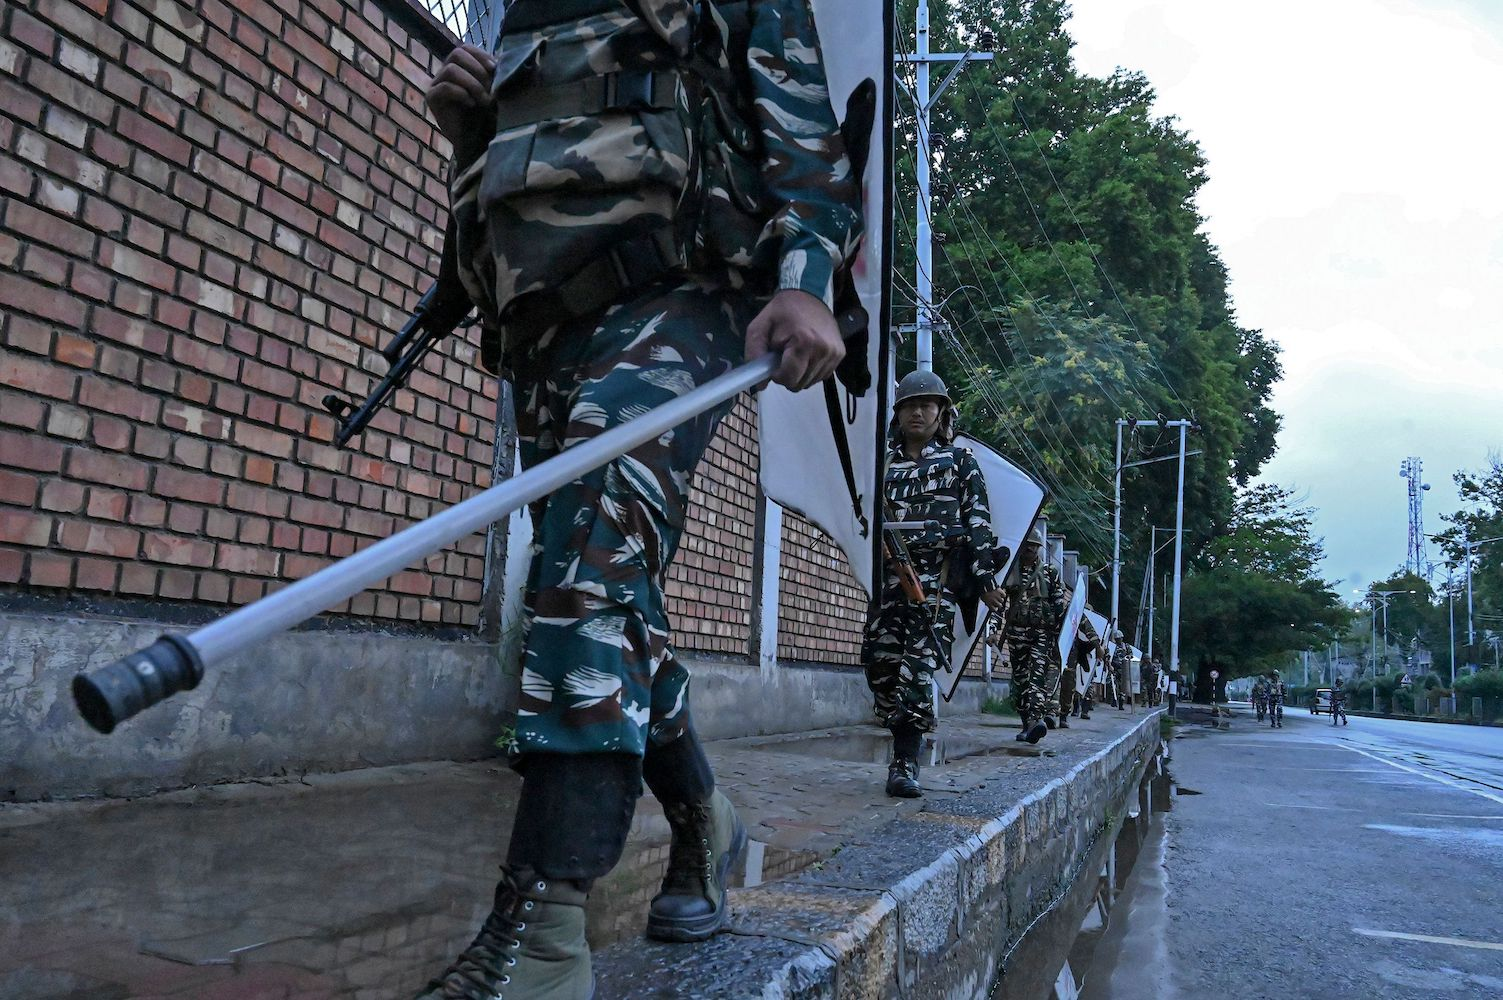 Kashmir Is Under the Heel of India's Colonialism – Foreign